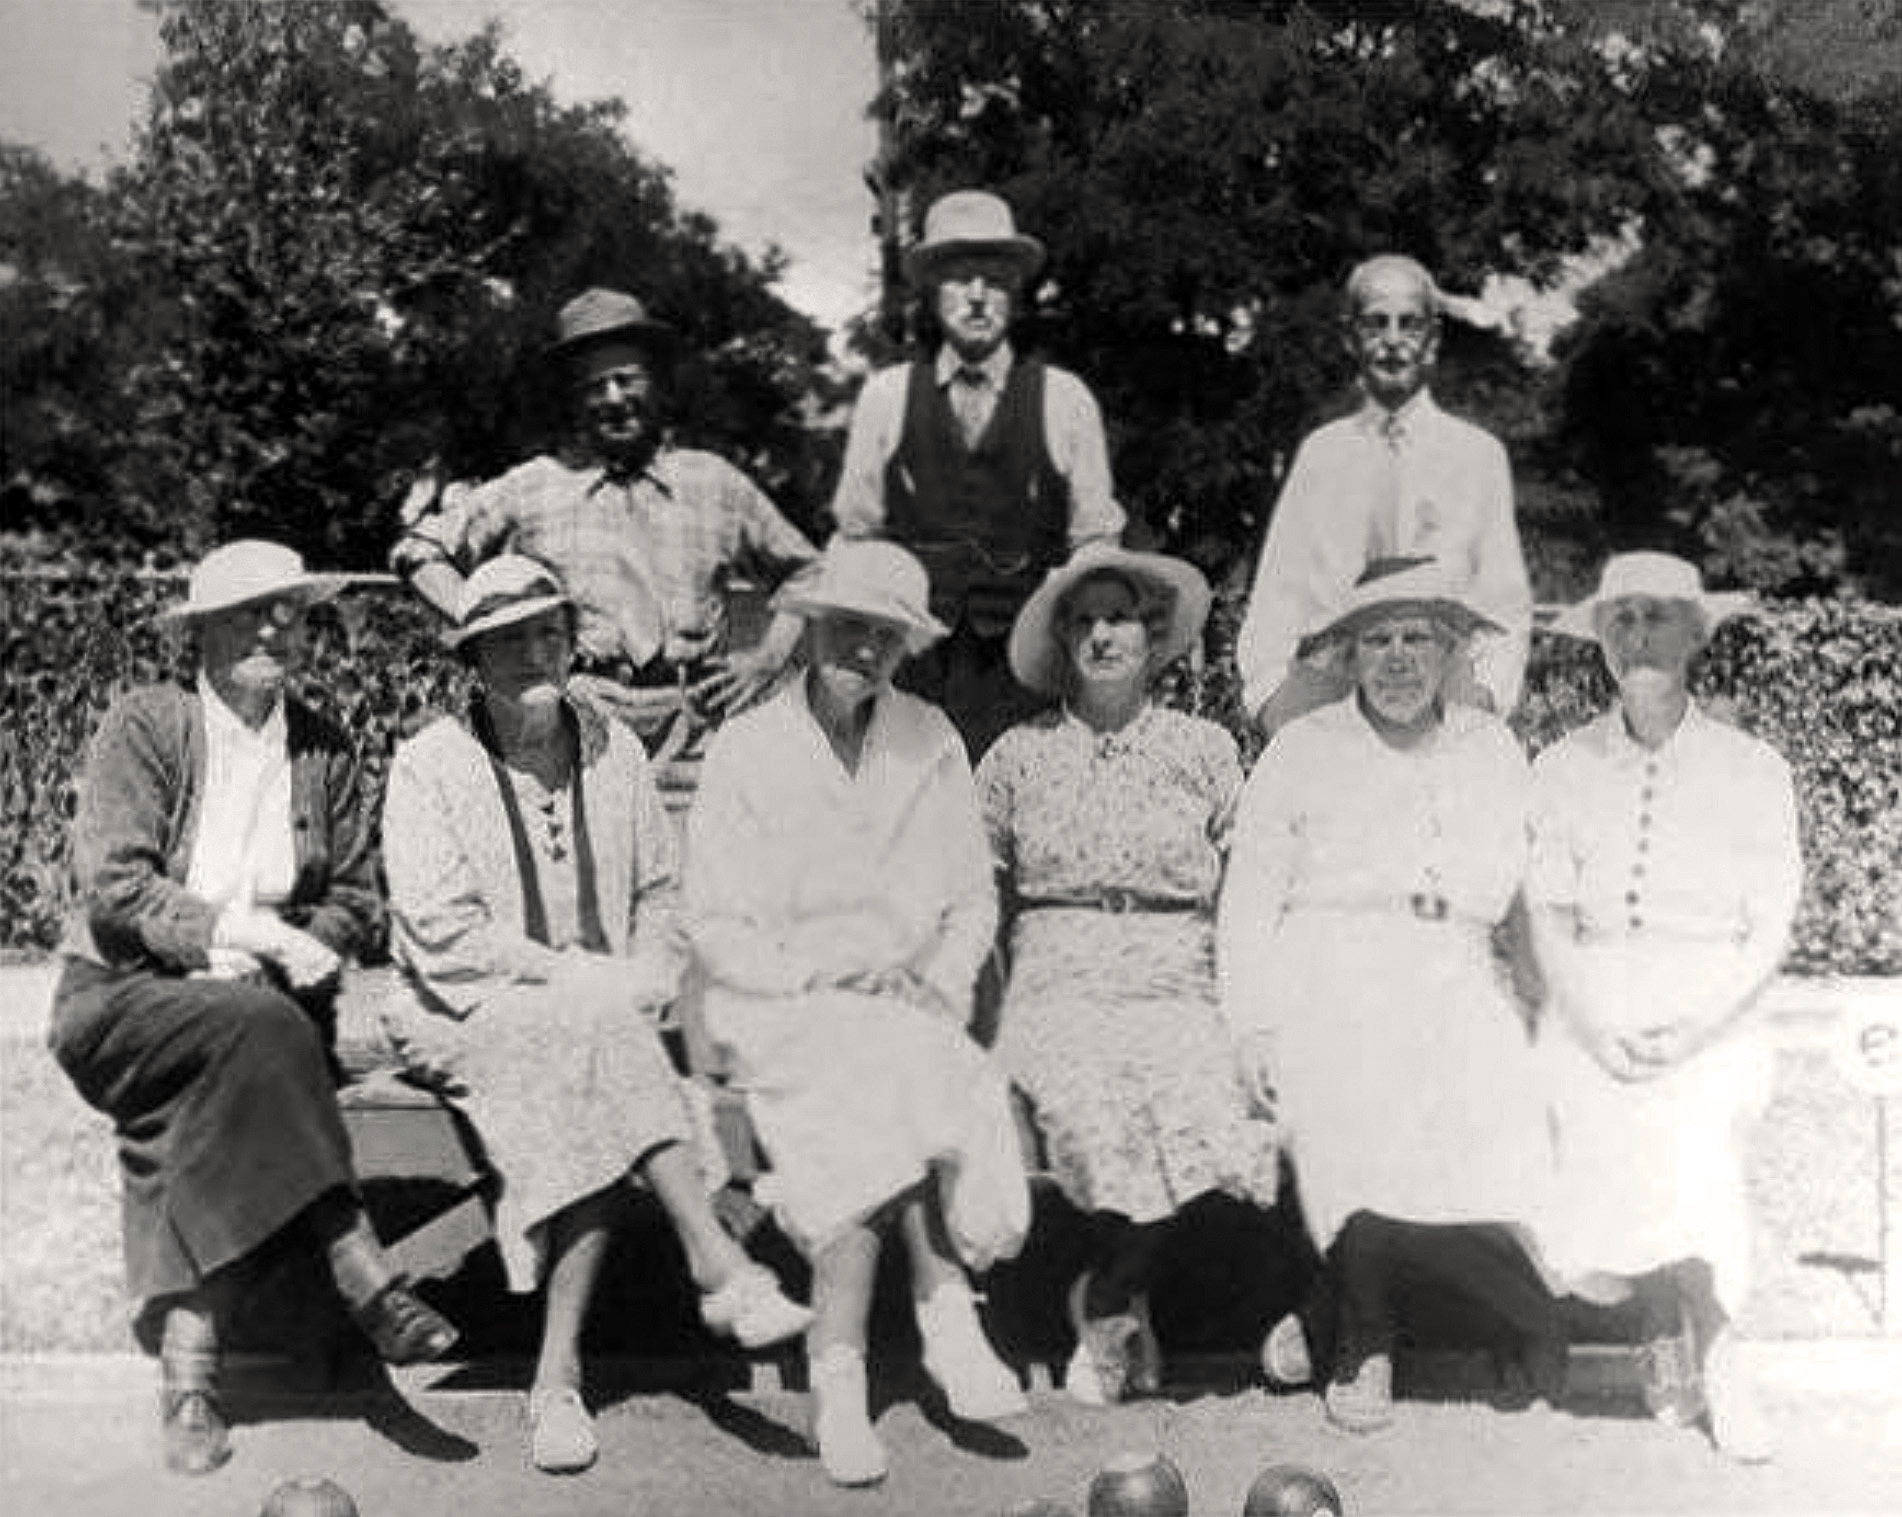 Club members circa 1935. Ginny Arnott is seated third from the left, with her husband John standing center rear. Those are likely Effie McAslen (died 1967) and Georgina Ostrander (died 1941) to the right of Ginny. Peter McKeand is standing to the right. PAHA photo.